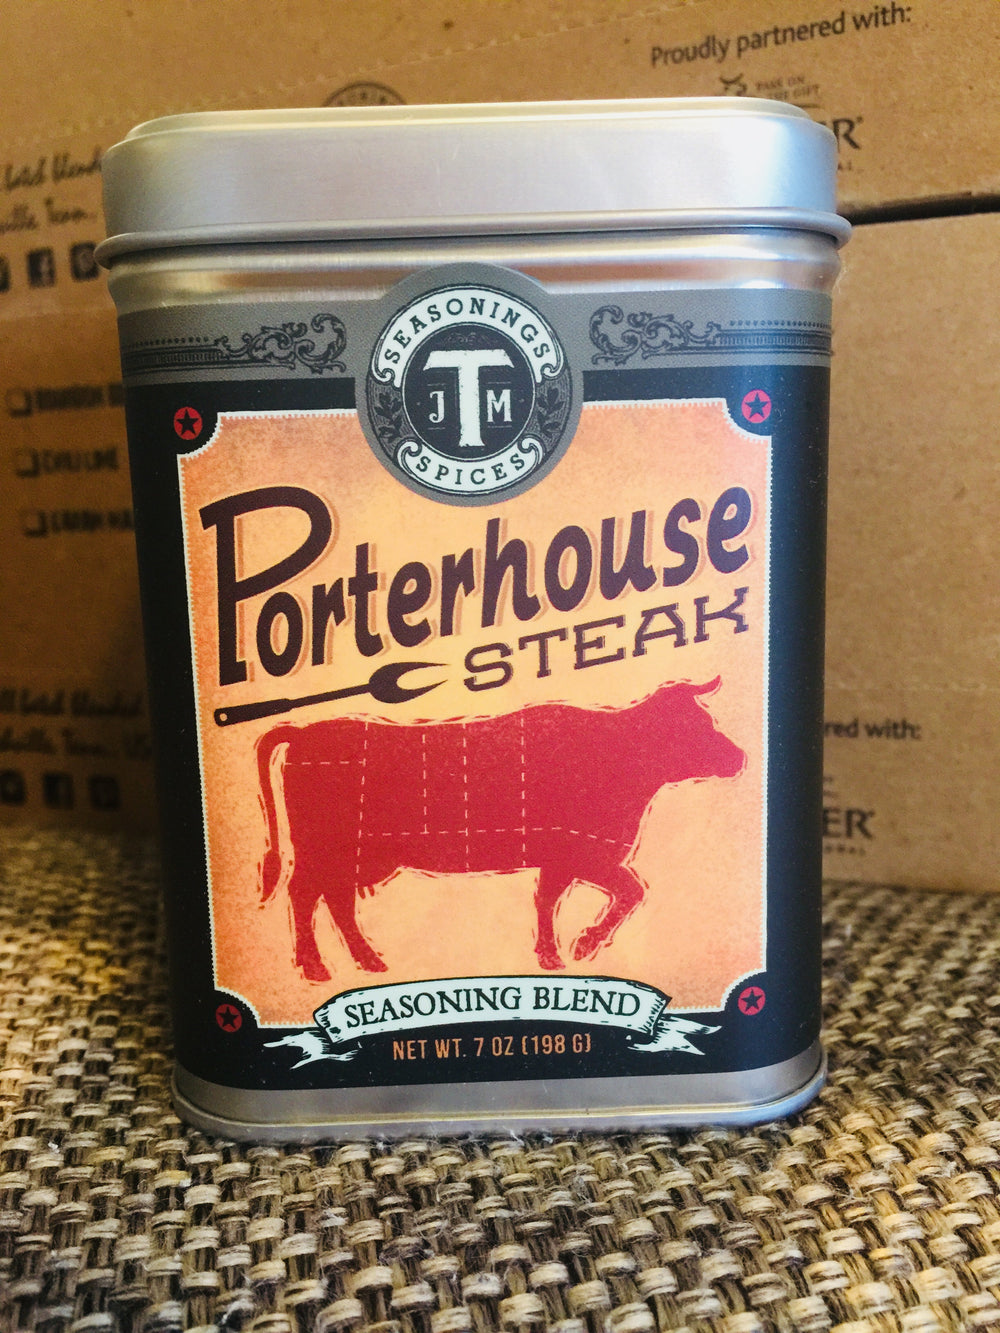 Porterhouse Steak Seasoning Spice Blend (J M Thomason)